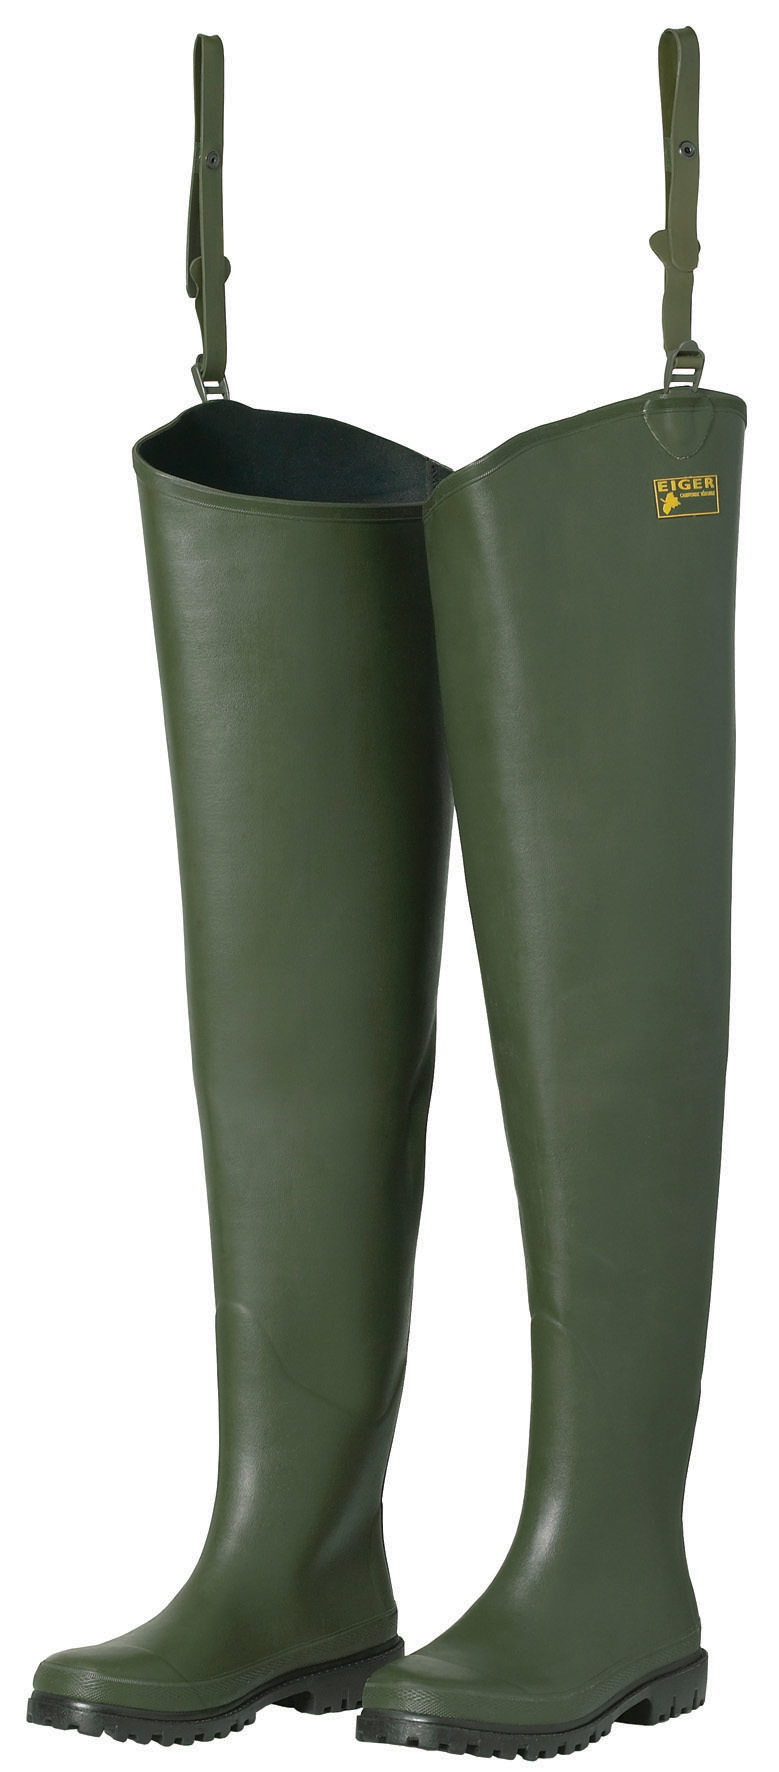 Eiger neoprene lined thigh waders glasgow angling centre for Fishing waders with boots